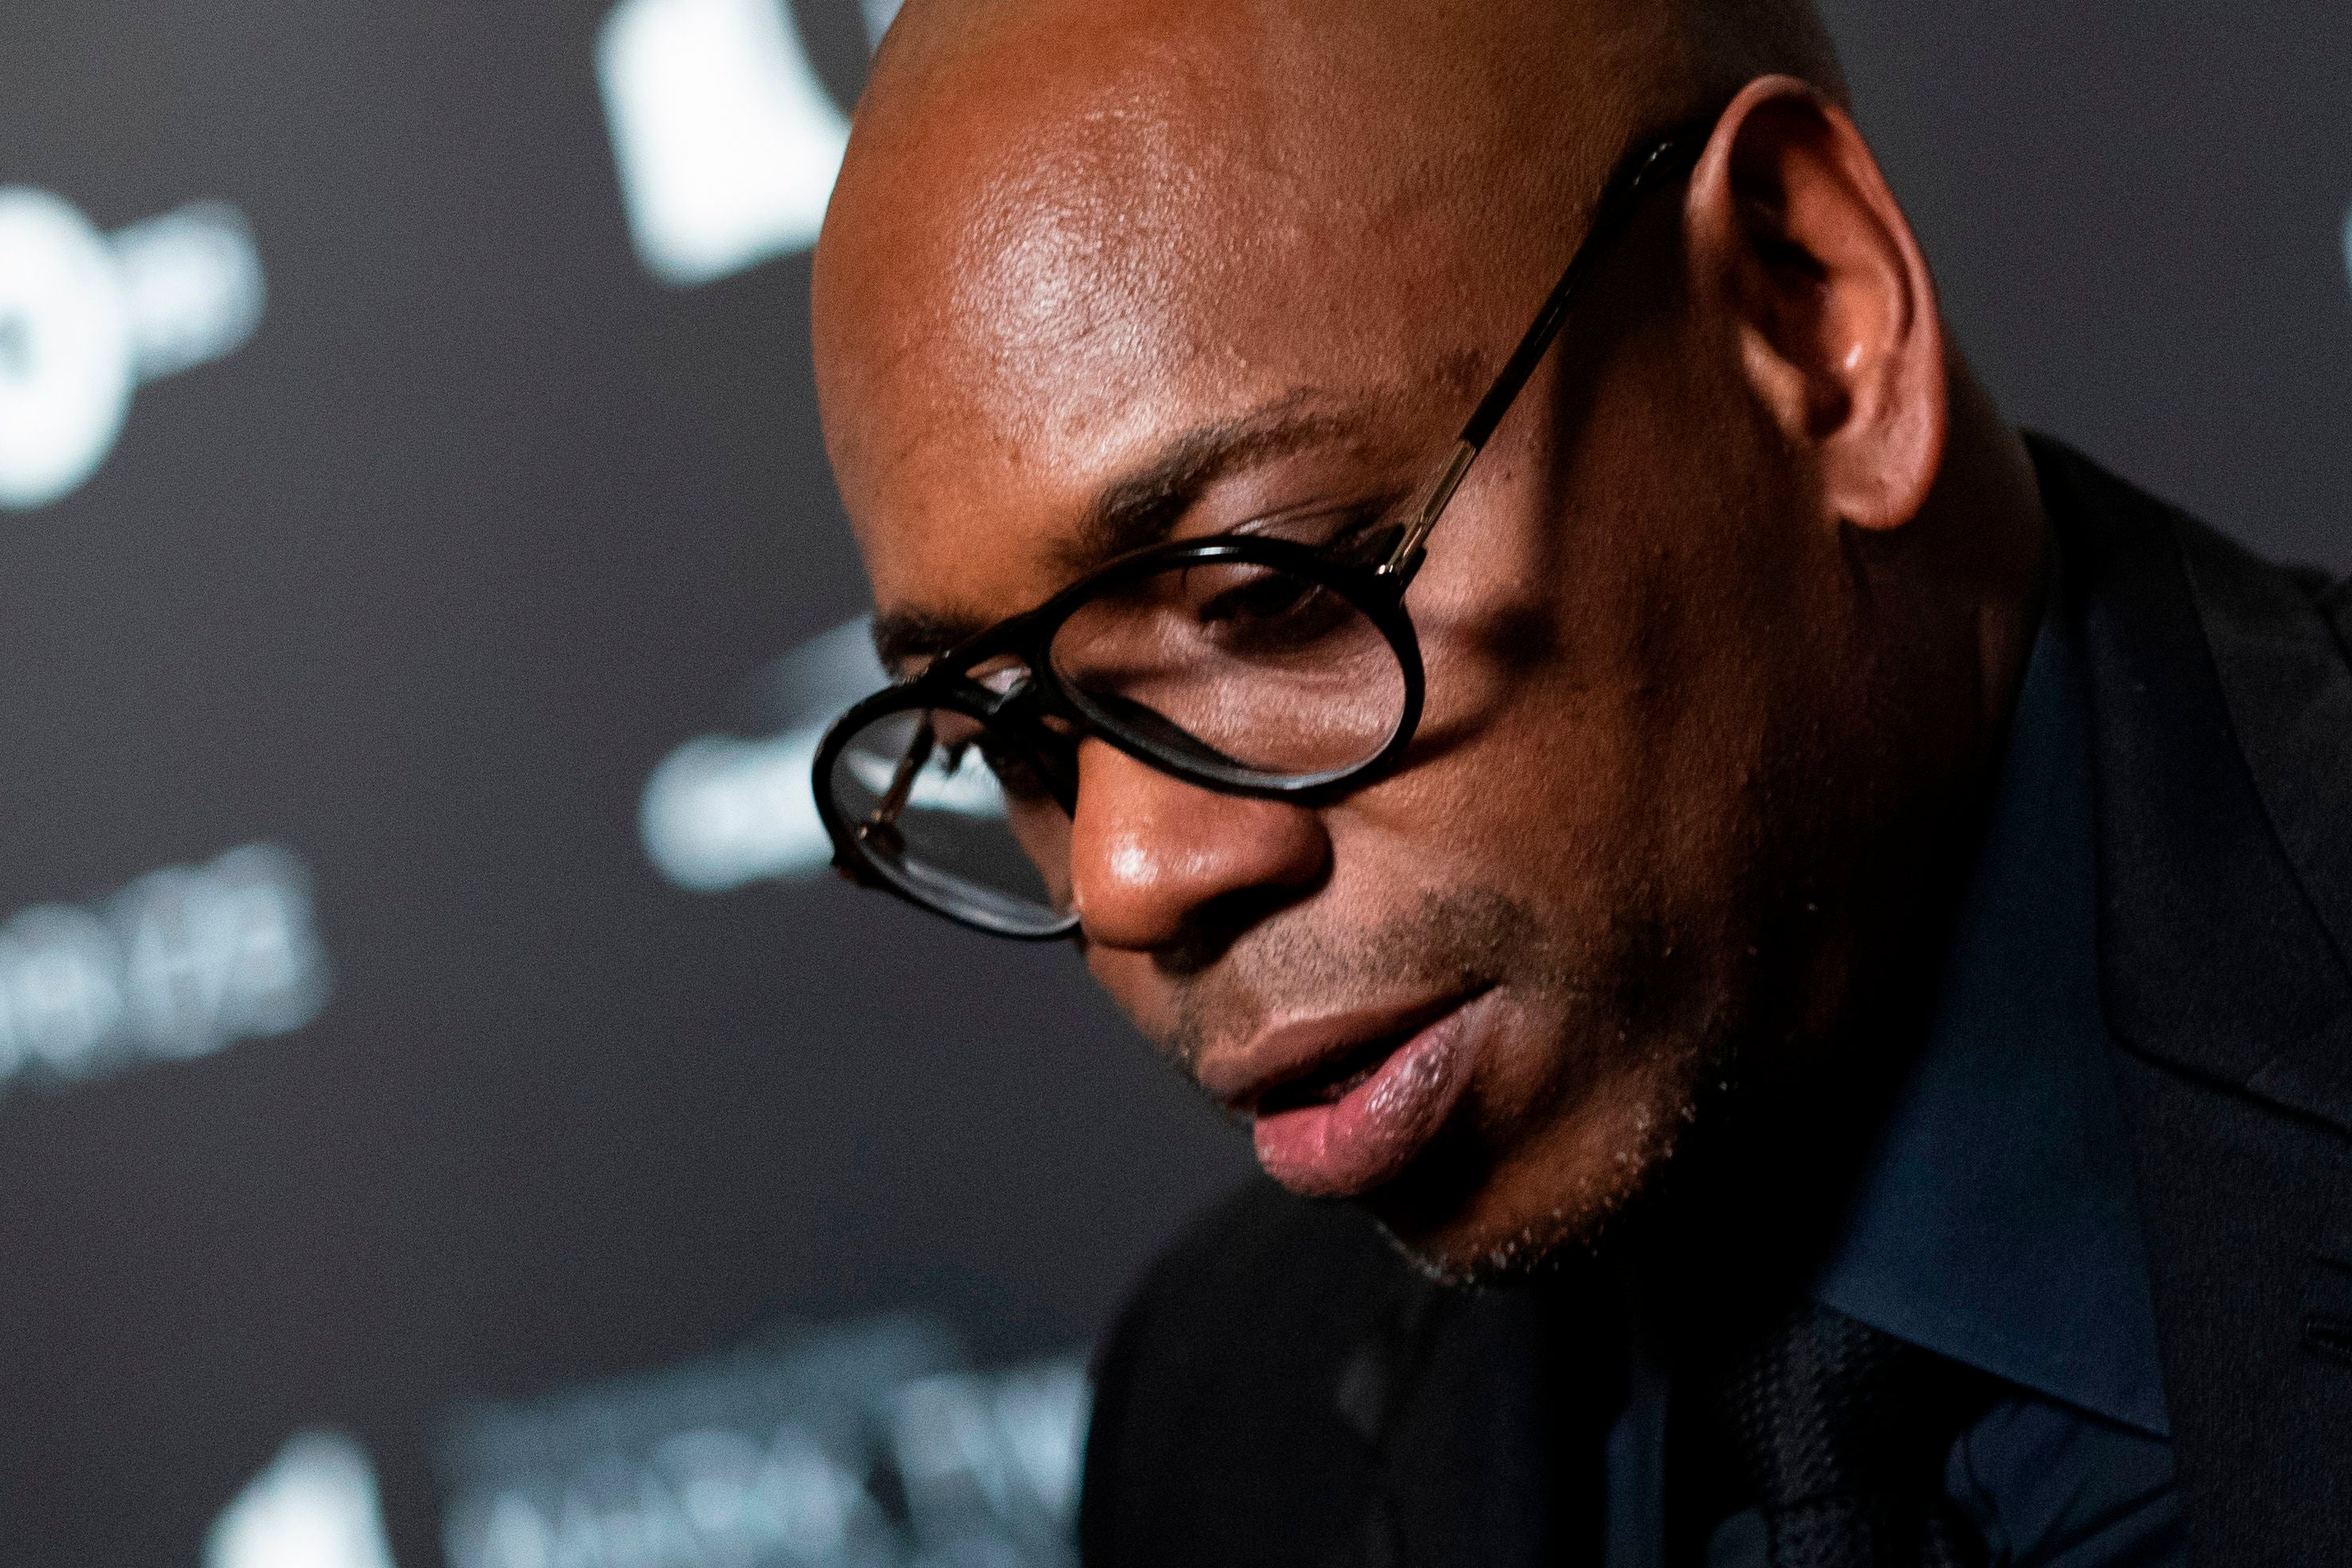 dave chappelle addresses george floyd s death in surprise netflix special 8 46 entertainment tonight dave chappelle addresses george floyd s